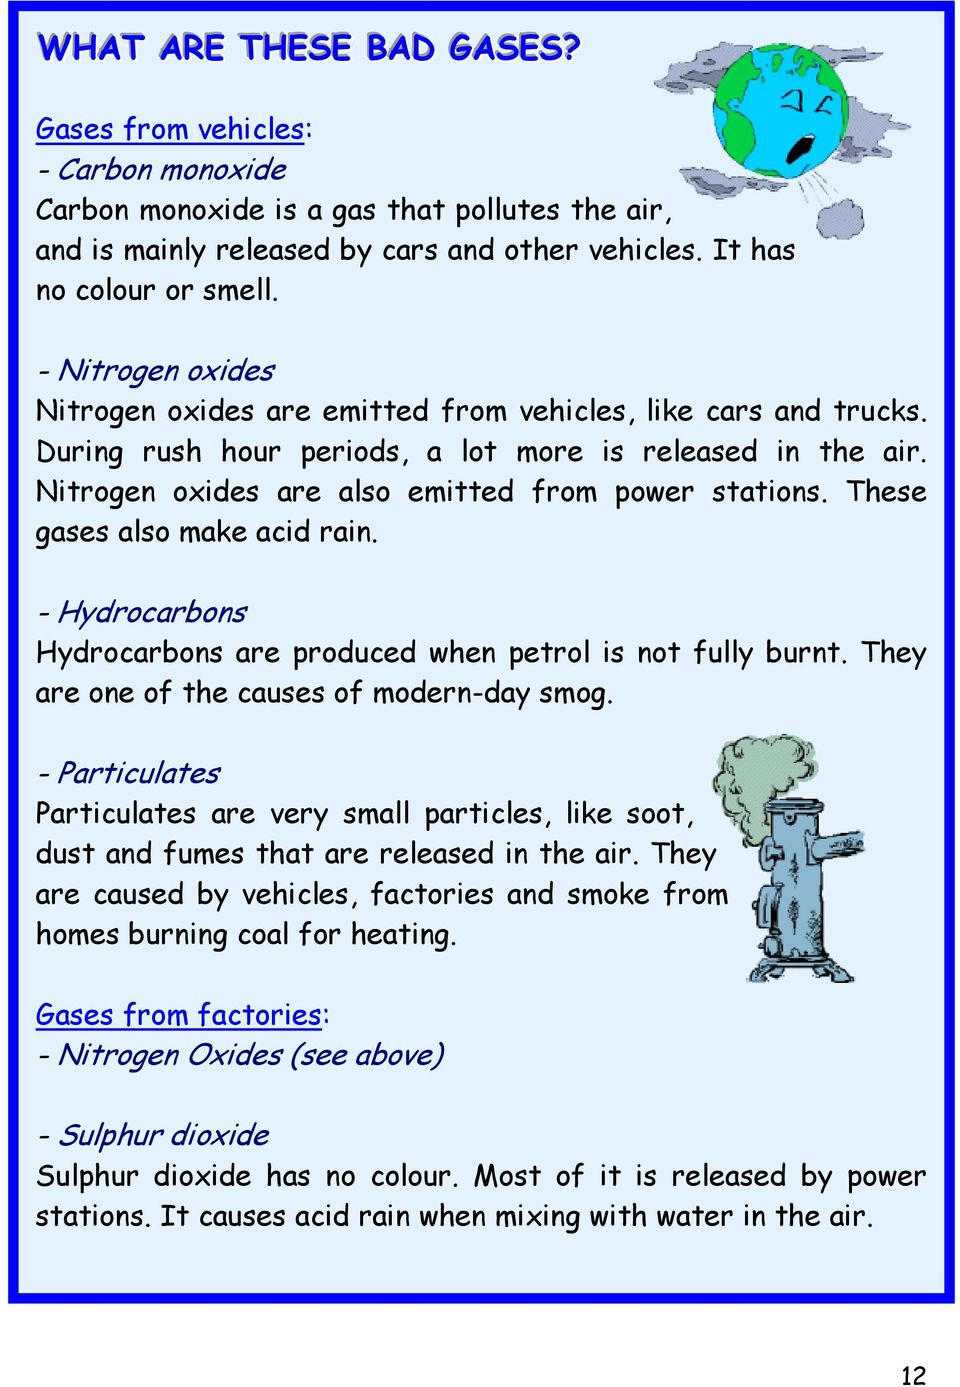 These gases also make acid rain. - Hydrocarbons Hydrocarbons are produced when petrol is not fully burnt. They are one of the causes of modern-day smog.